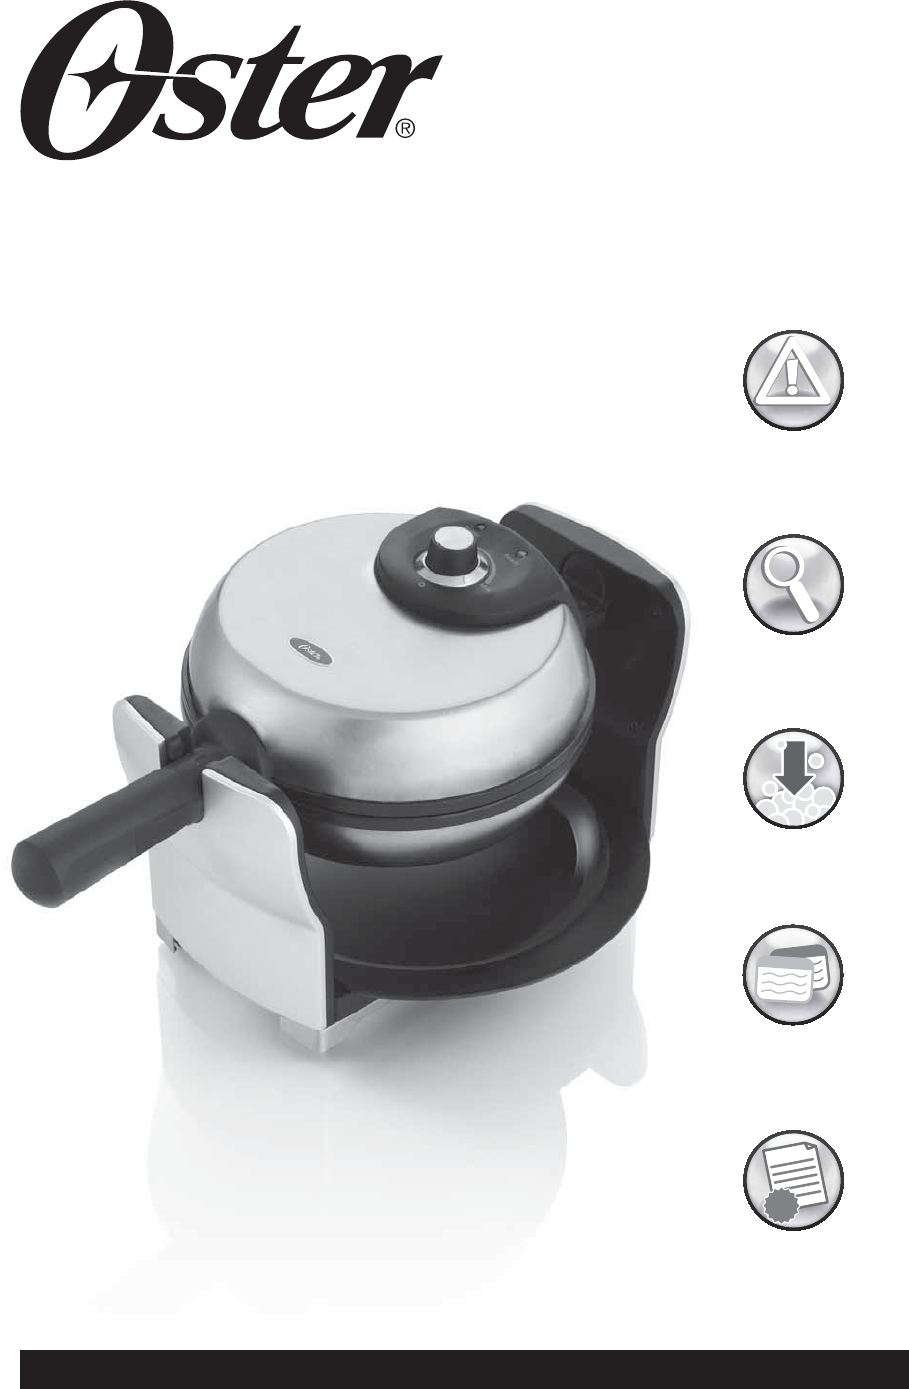 Oster Coffee Maker Troubleshooting : Oster Waffle Iron CKSTWFBF20 User Guide ManualsOnline.com